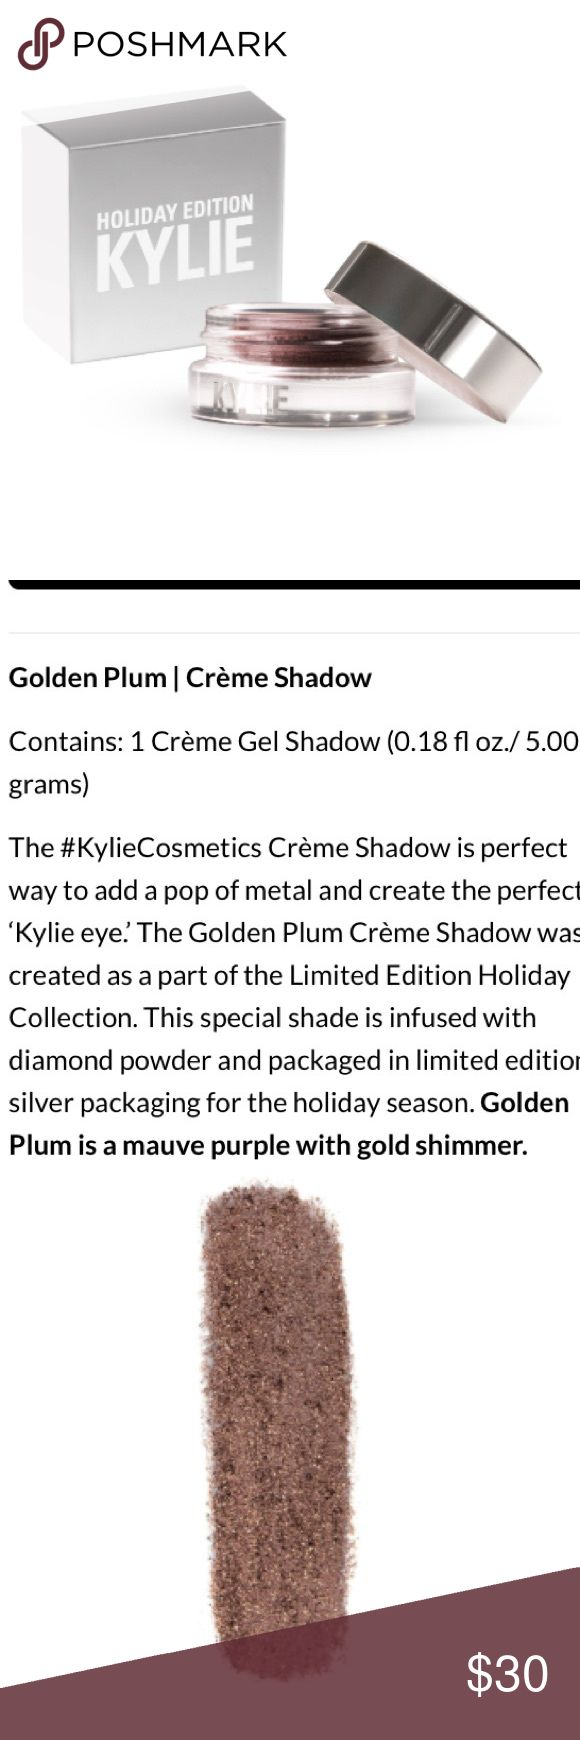 Individual ornament boxes - Nib Authenticltd Ed Kylie Golden Plum Shadow Authenticltd Ed Brand New